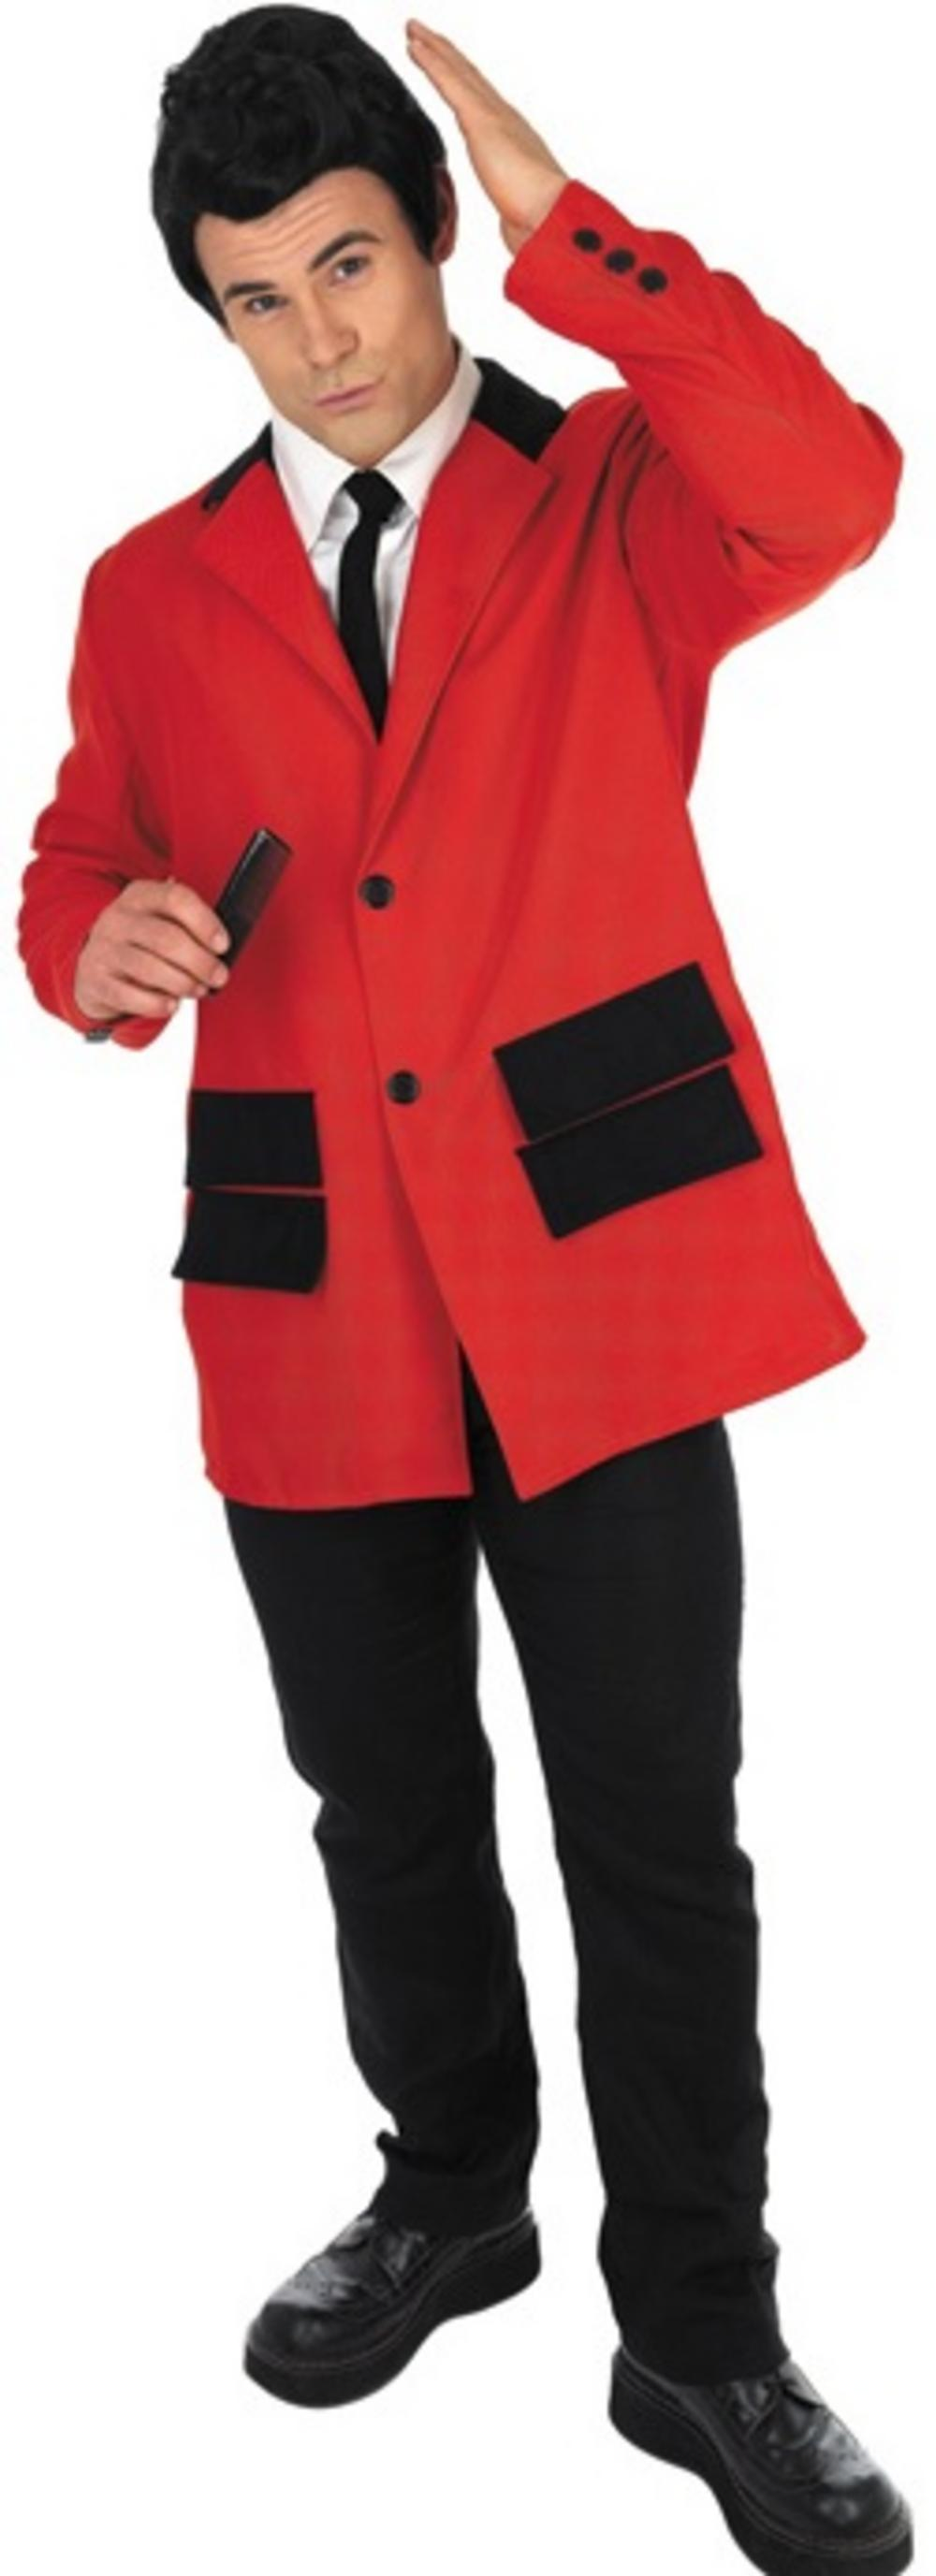 50s Red Teddy Boy Costume